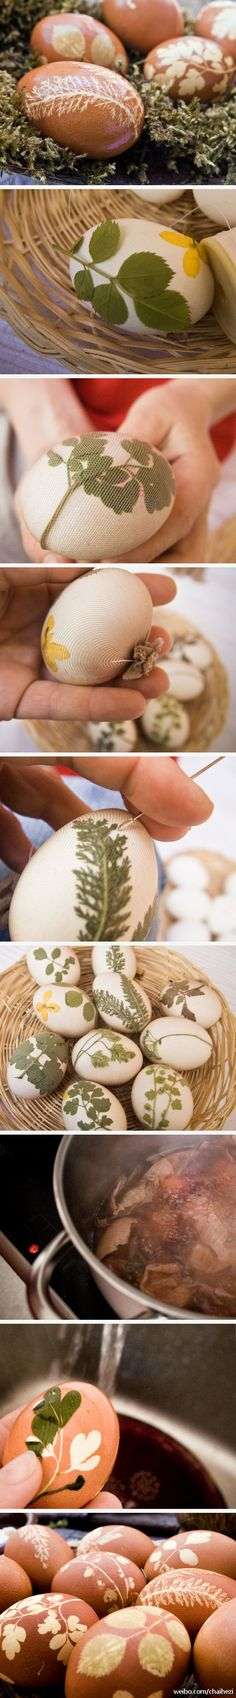 Decorating Easter eggs with reverse images of plants